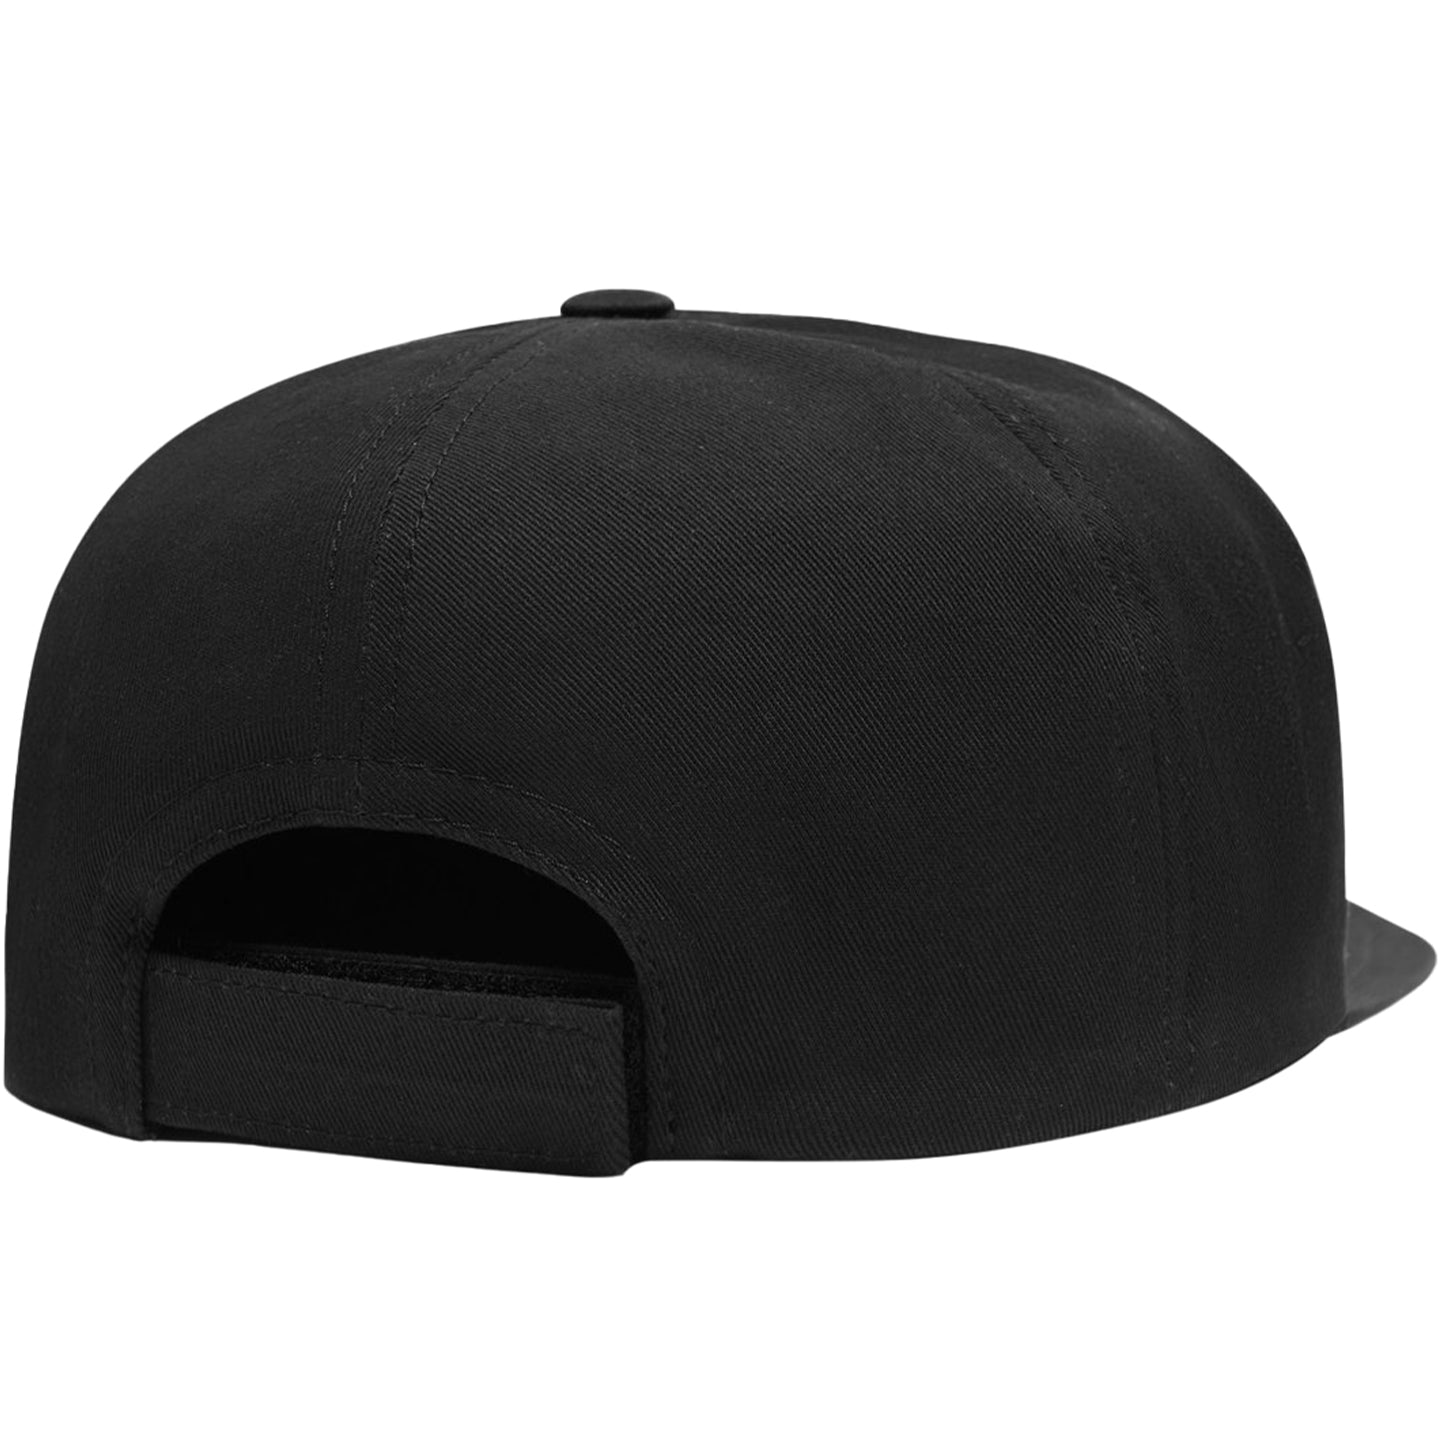 FEAR OF GOD ZEGNA BASEBALL HAT